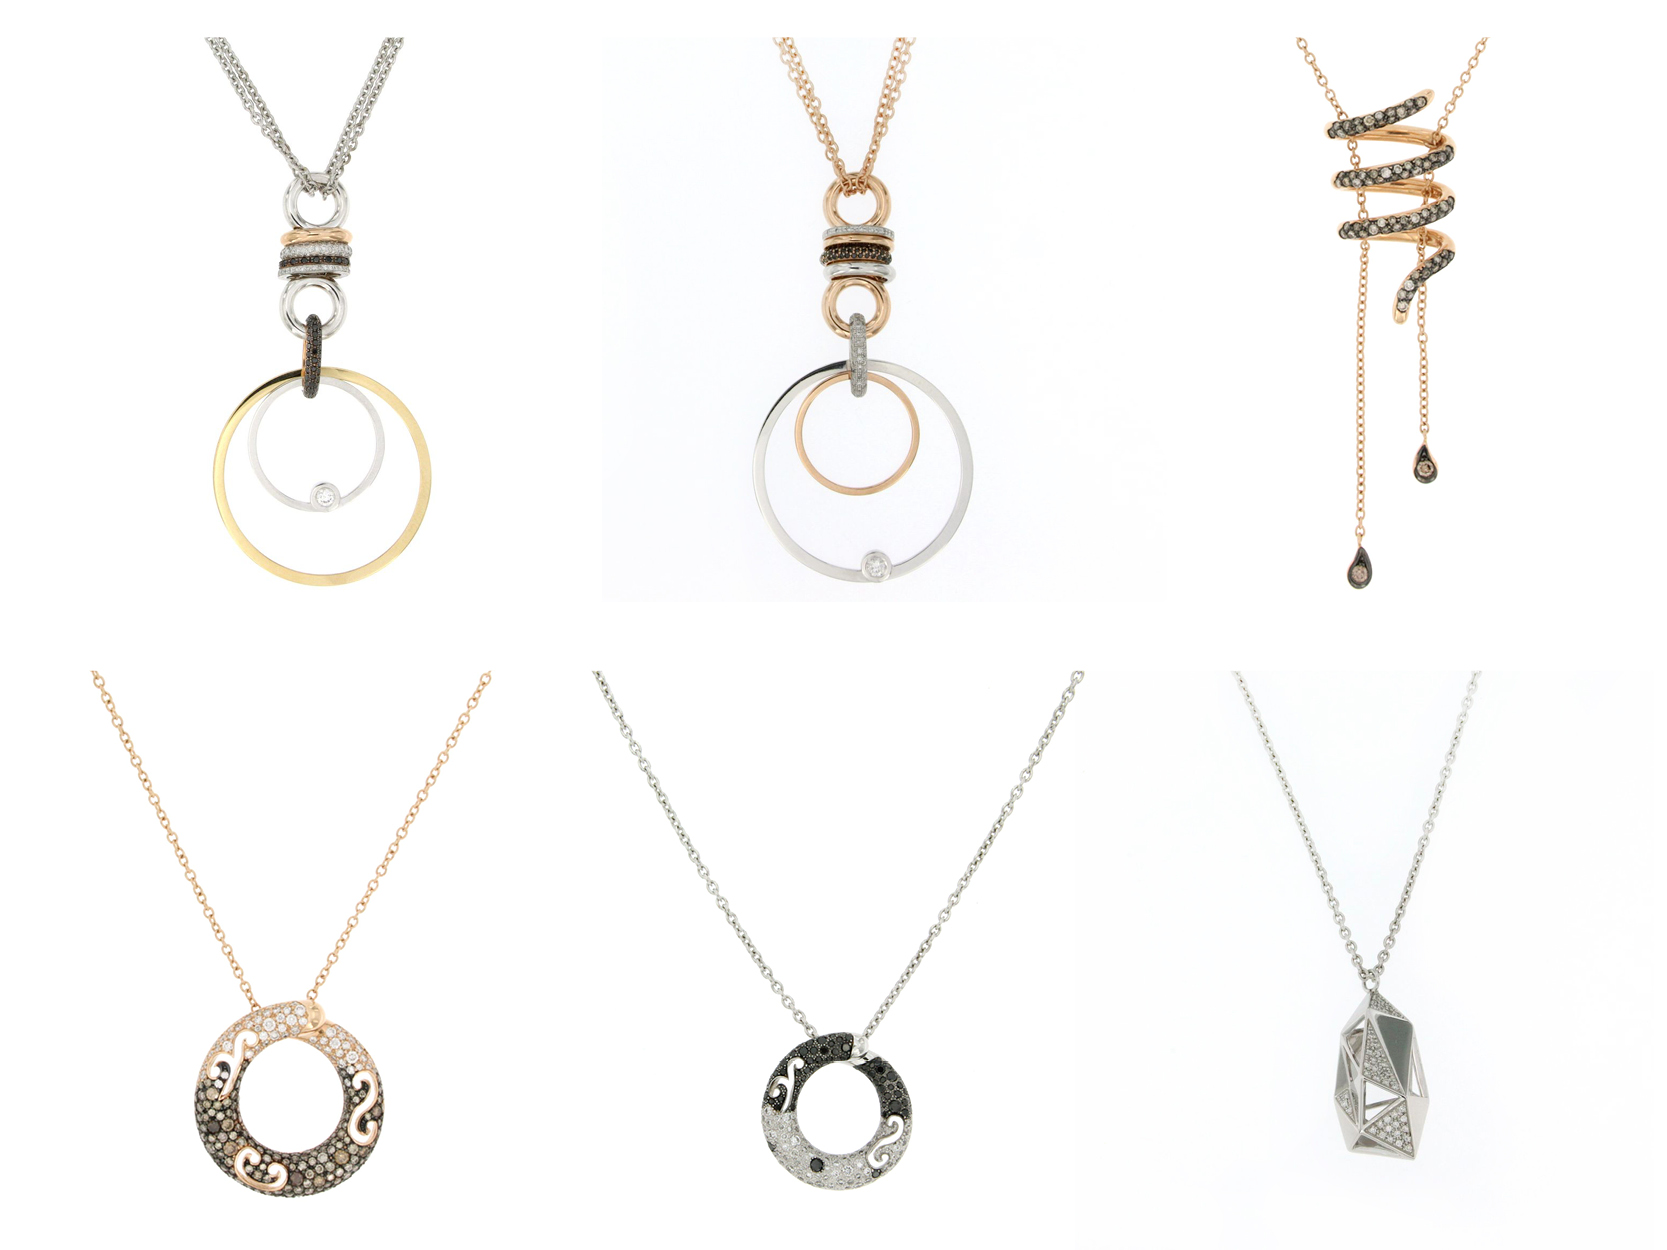 necklaces with a modern design